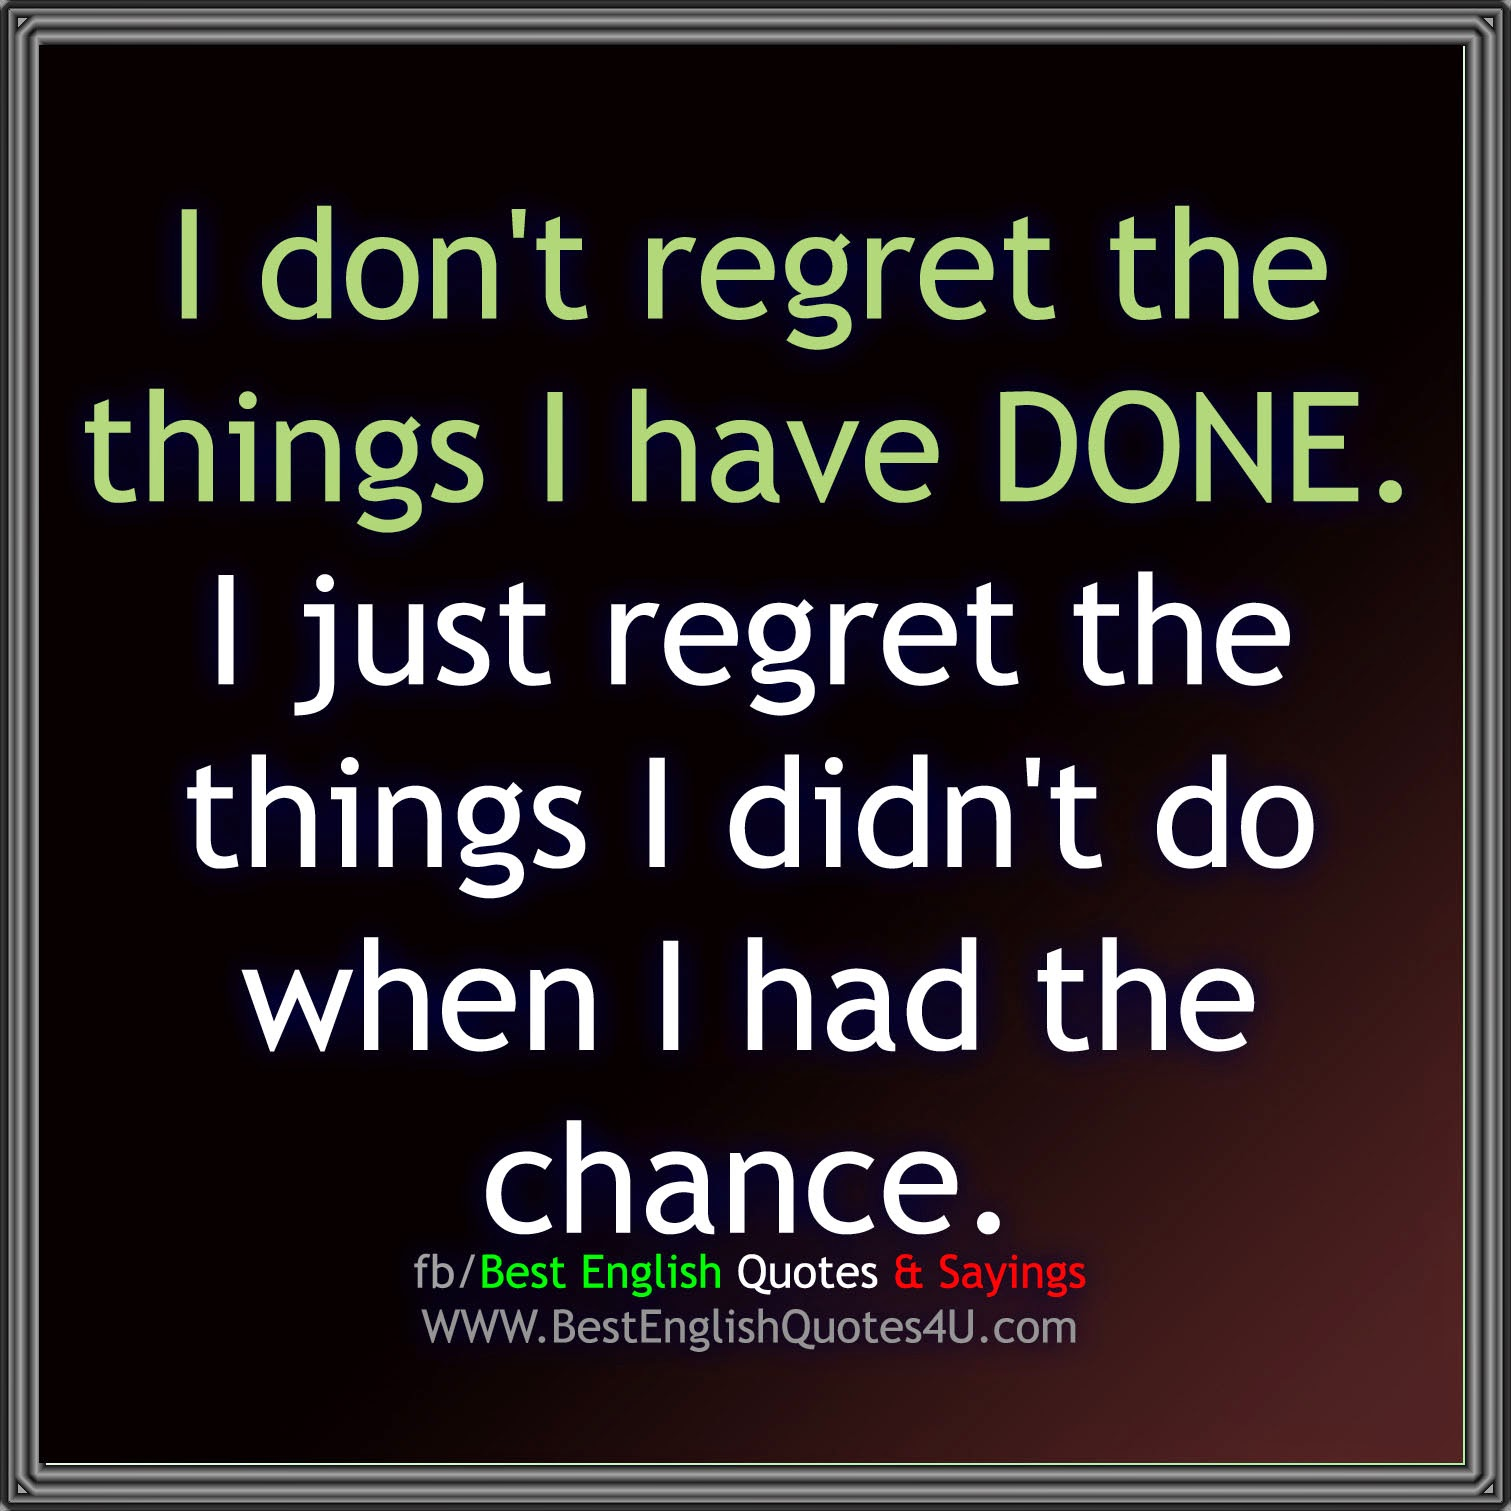 Do Regret Have I Things I Regret I Wen Didnt I Dont Done Chance Things I Had